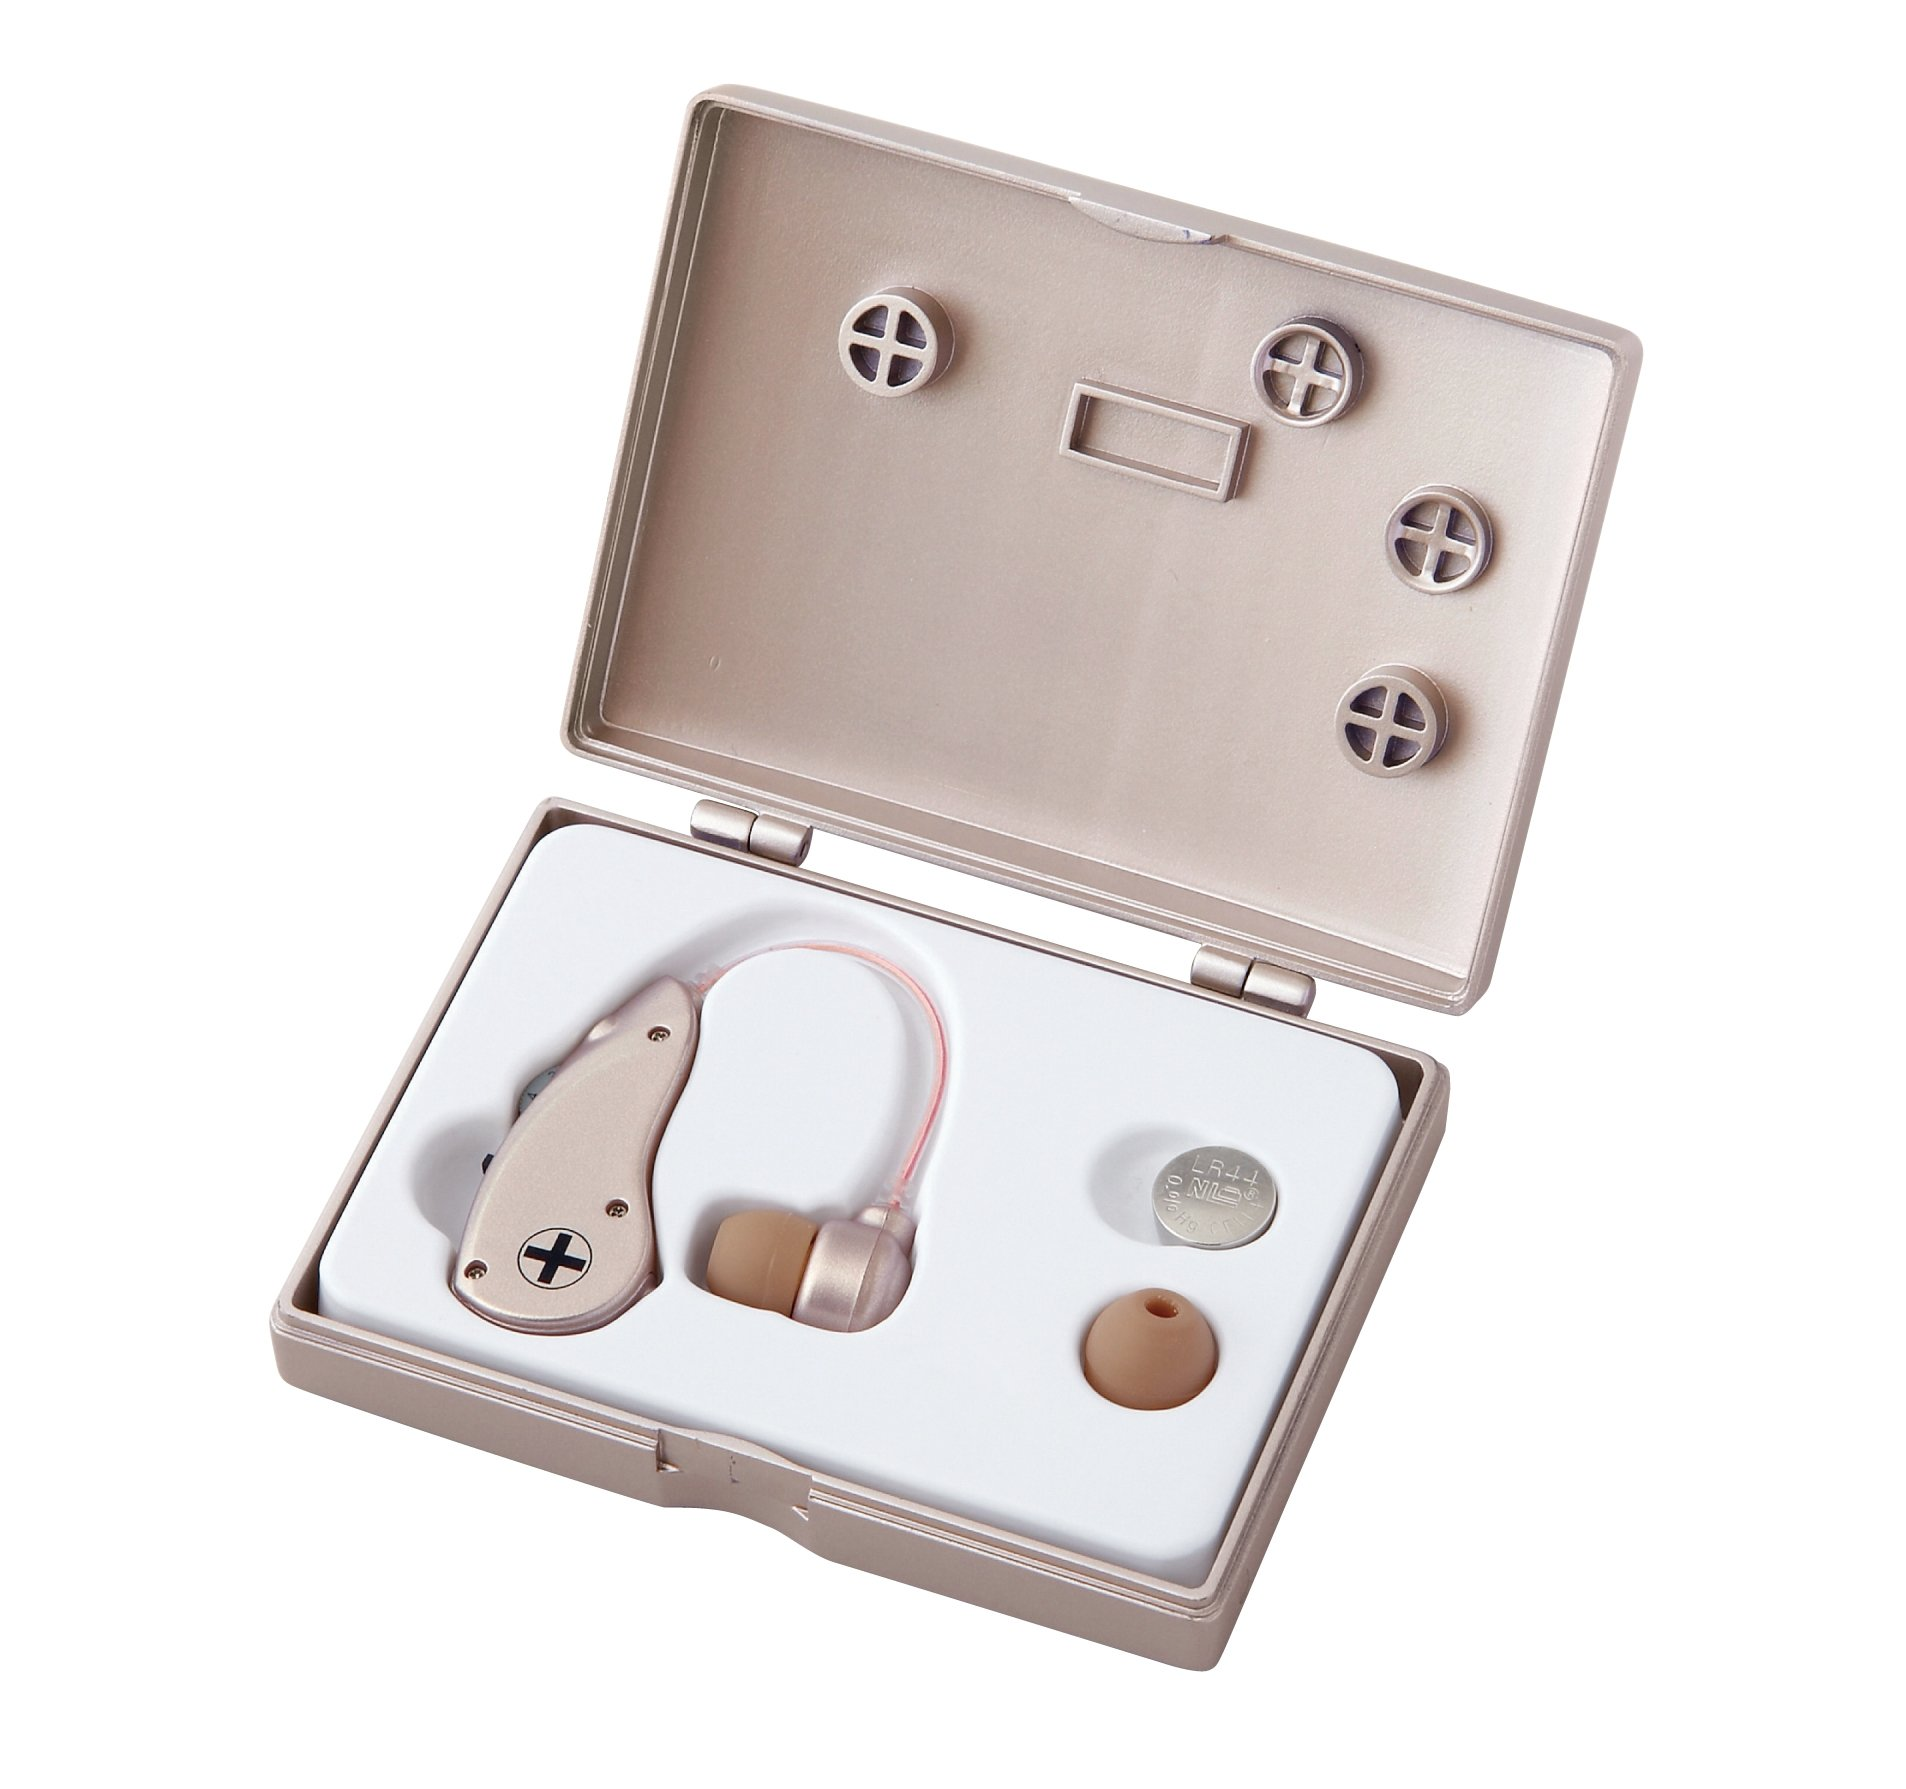 Clear Sound Personal Sound Amplifier. Affordable with best quality. Behind The Ear. Easy To Use. Fit Both Ears, Energy-Saving Technology, with 2 ear buds (Large and Small) to fit most customers. New flexible tube best fit over ear. Ear buds made from spec